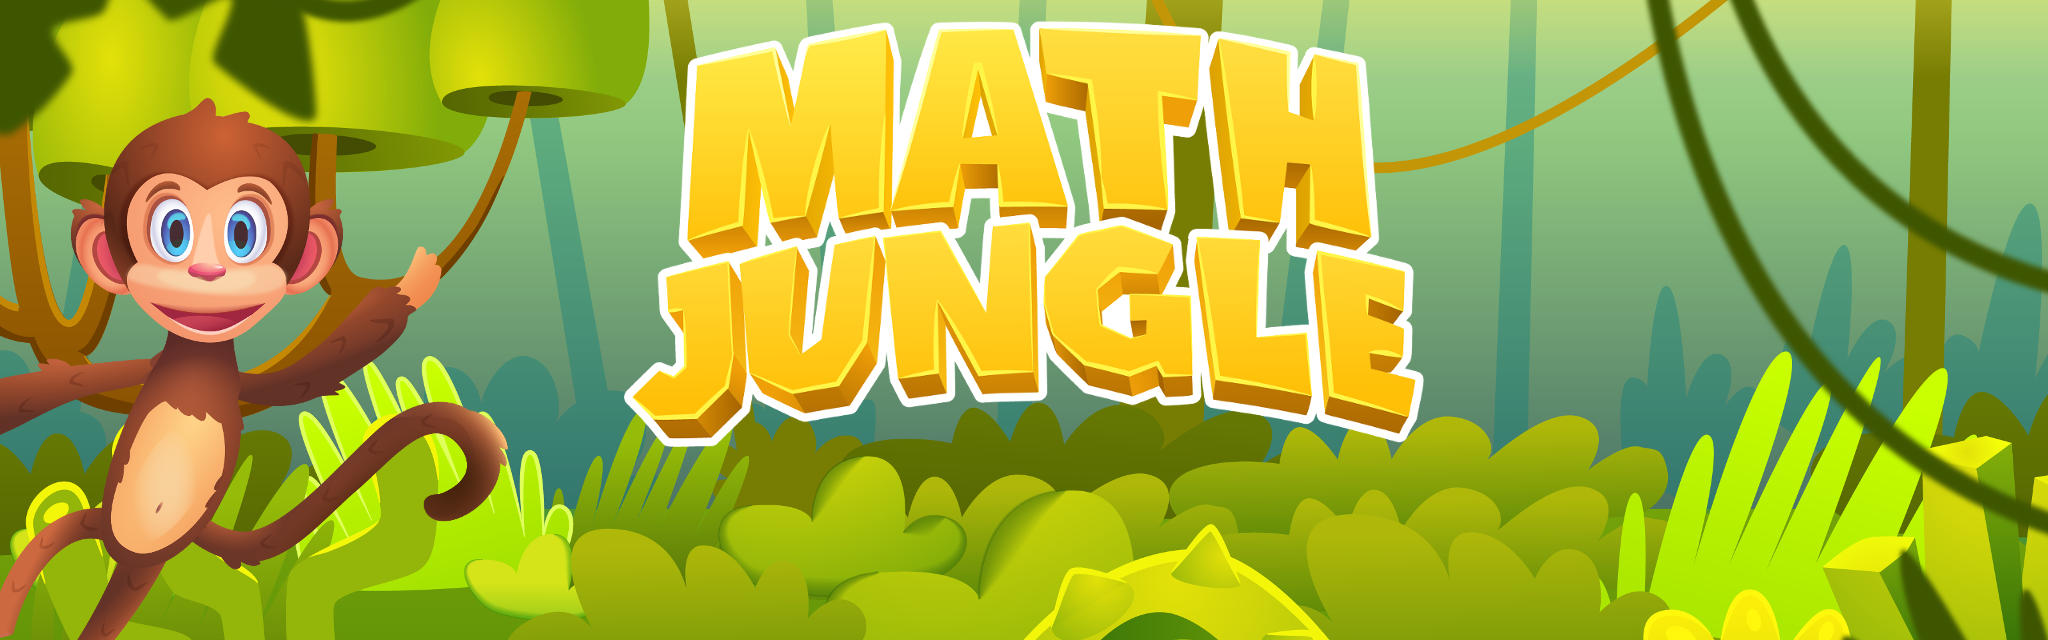 Appnewsbanner mathjungle1 web v1 afcb83024fd7b4e028ed1387c2ef1984fda3de4e3b07b1c93c77744d755a3696